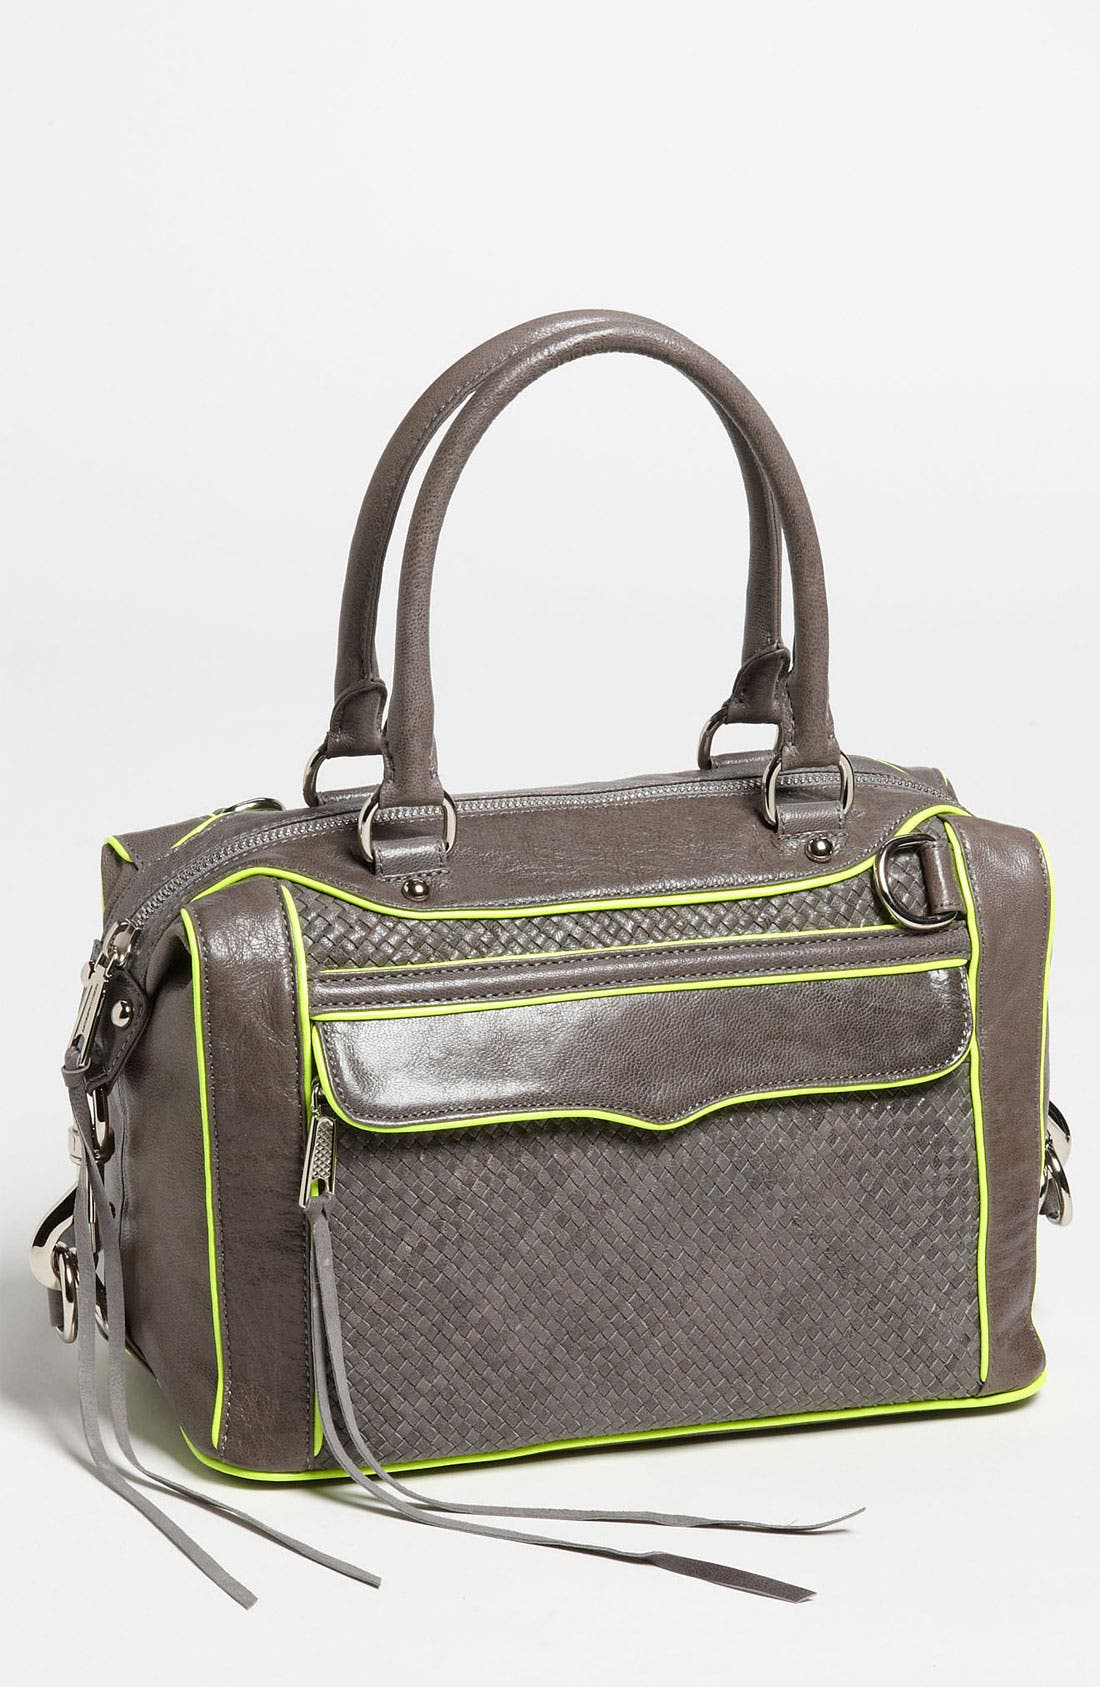 Alternate Image 1 Selected - Rebecca Minkoff 'Mini MAB' Leather Satchel